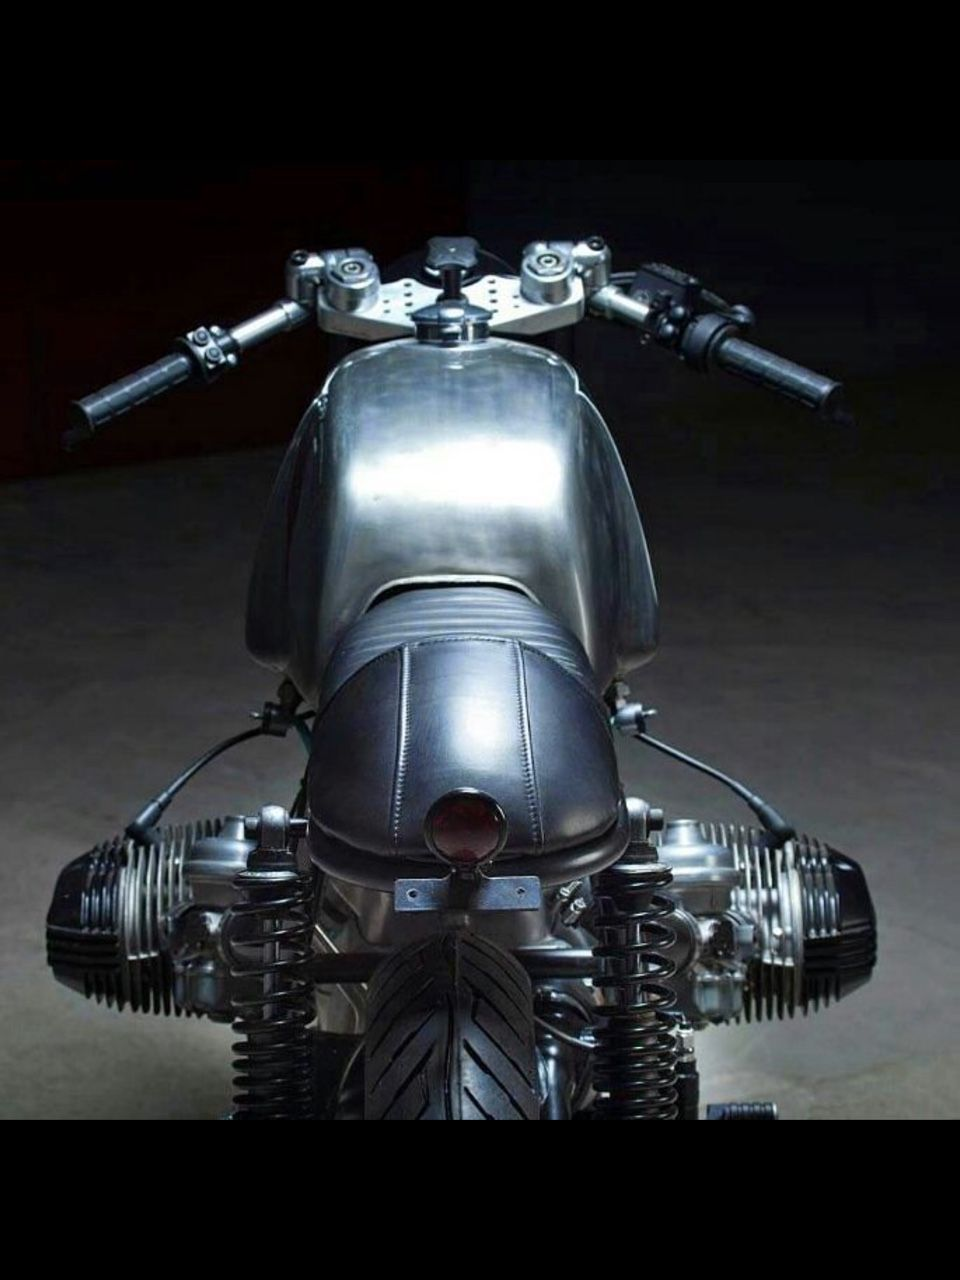 BMW Cafe Racer #motorcycles #caferacer #motos | caferacerpasion.com ...